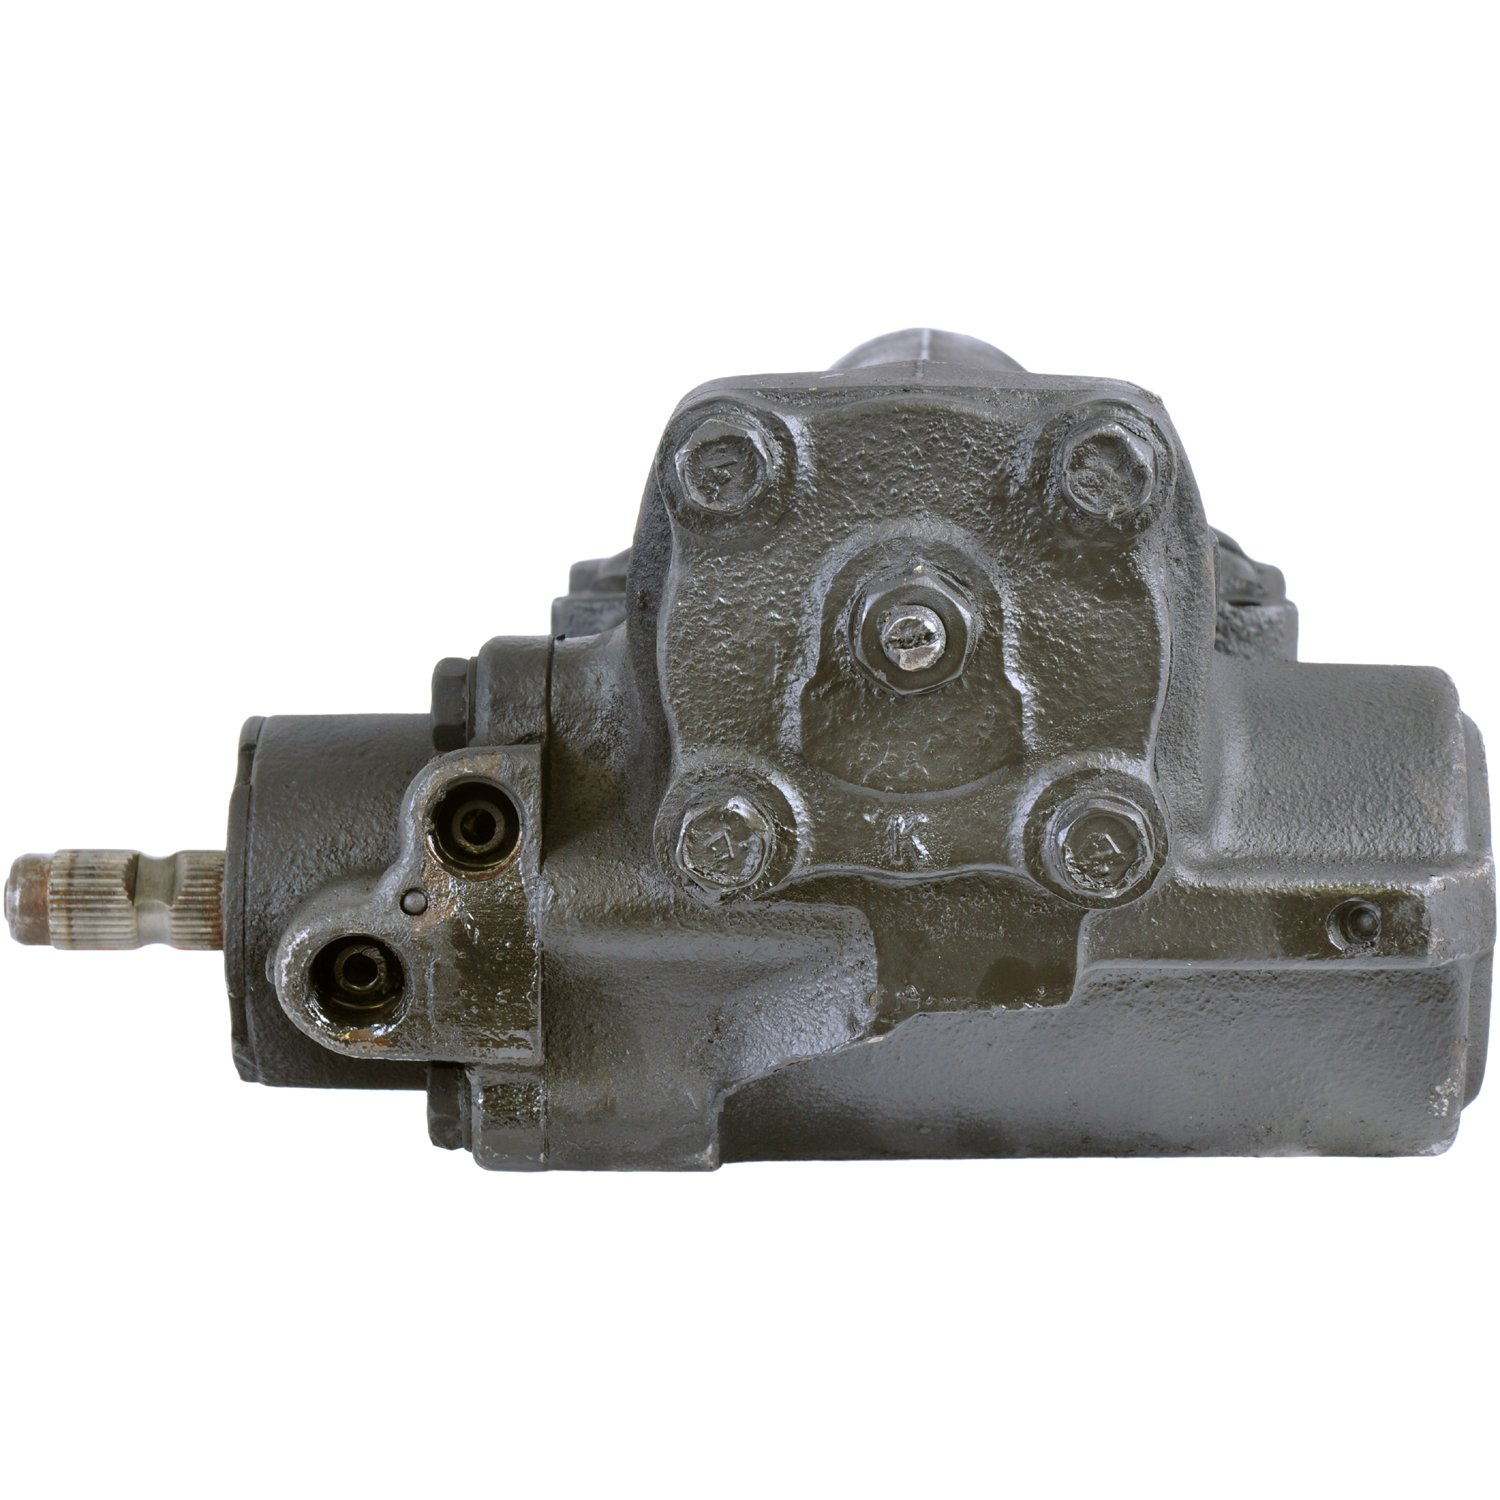 Remanufactured ACDelco 36G0226 Professional Steering Gear without Pitman Arm